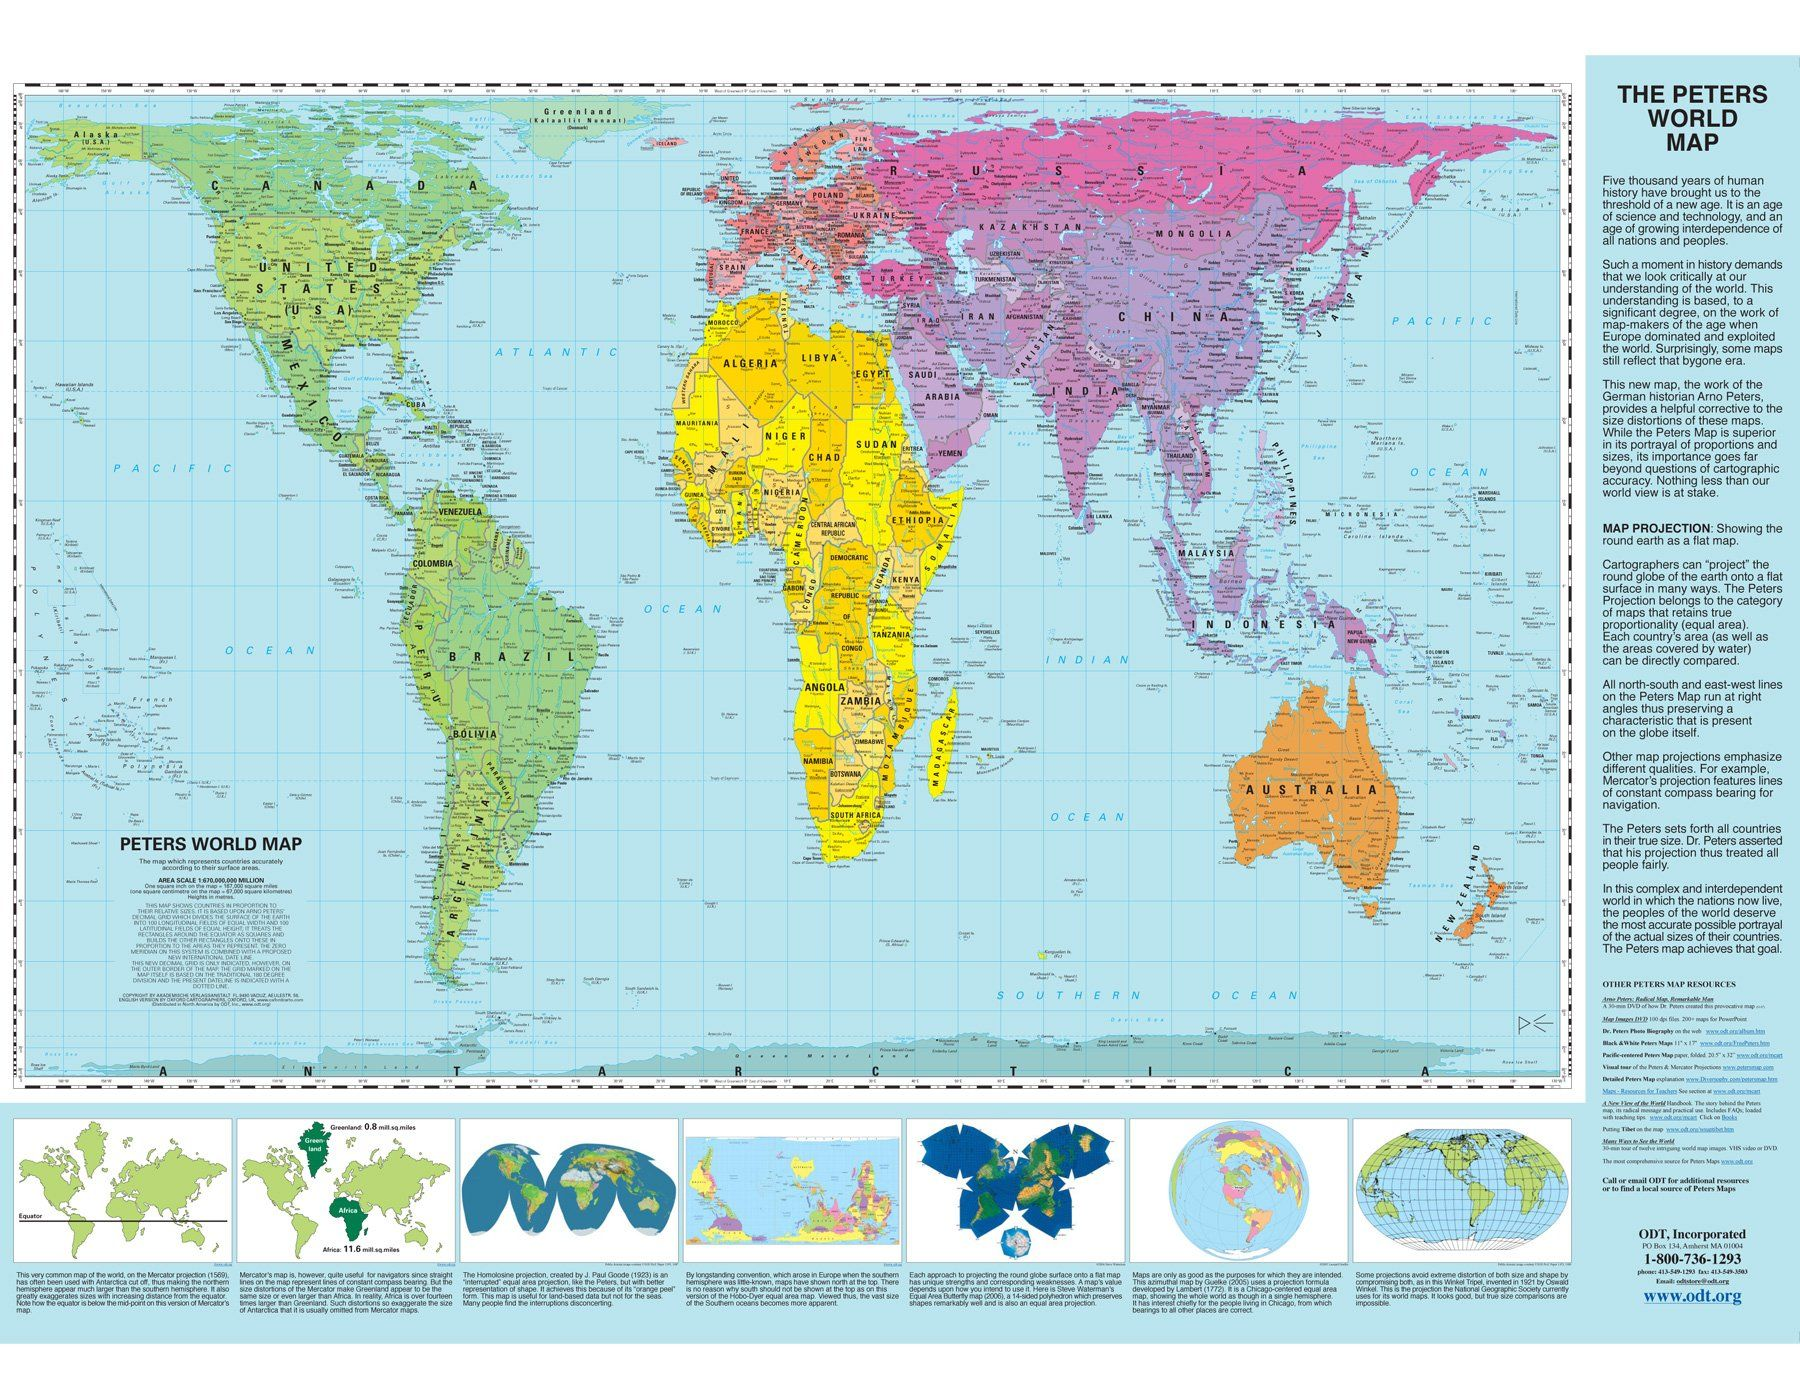 Peters projection world map laminated arno peters odtmaps peters projection world map laminated arno peters odtmaps oxford cartographers gumiabroncs Images